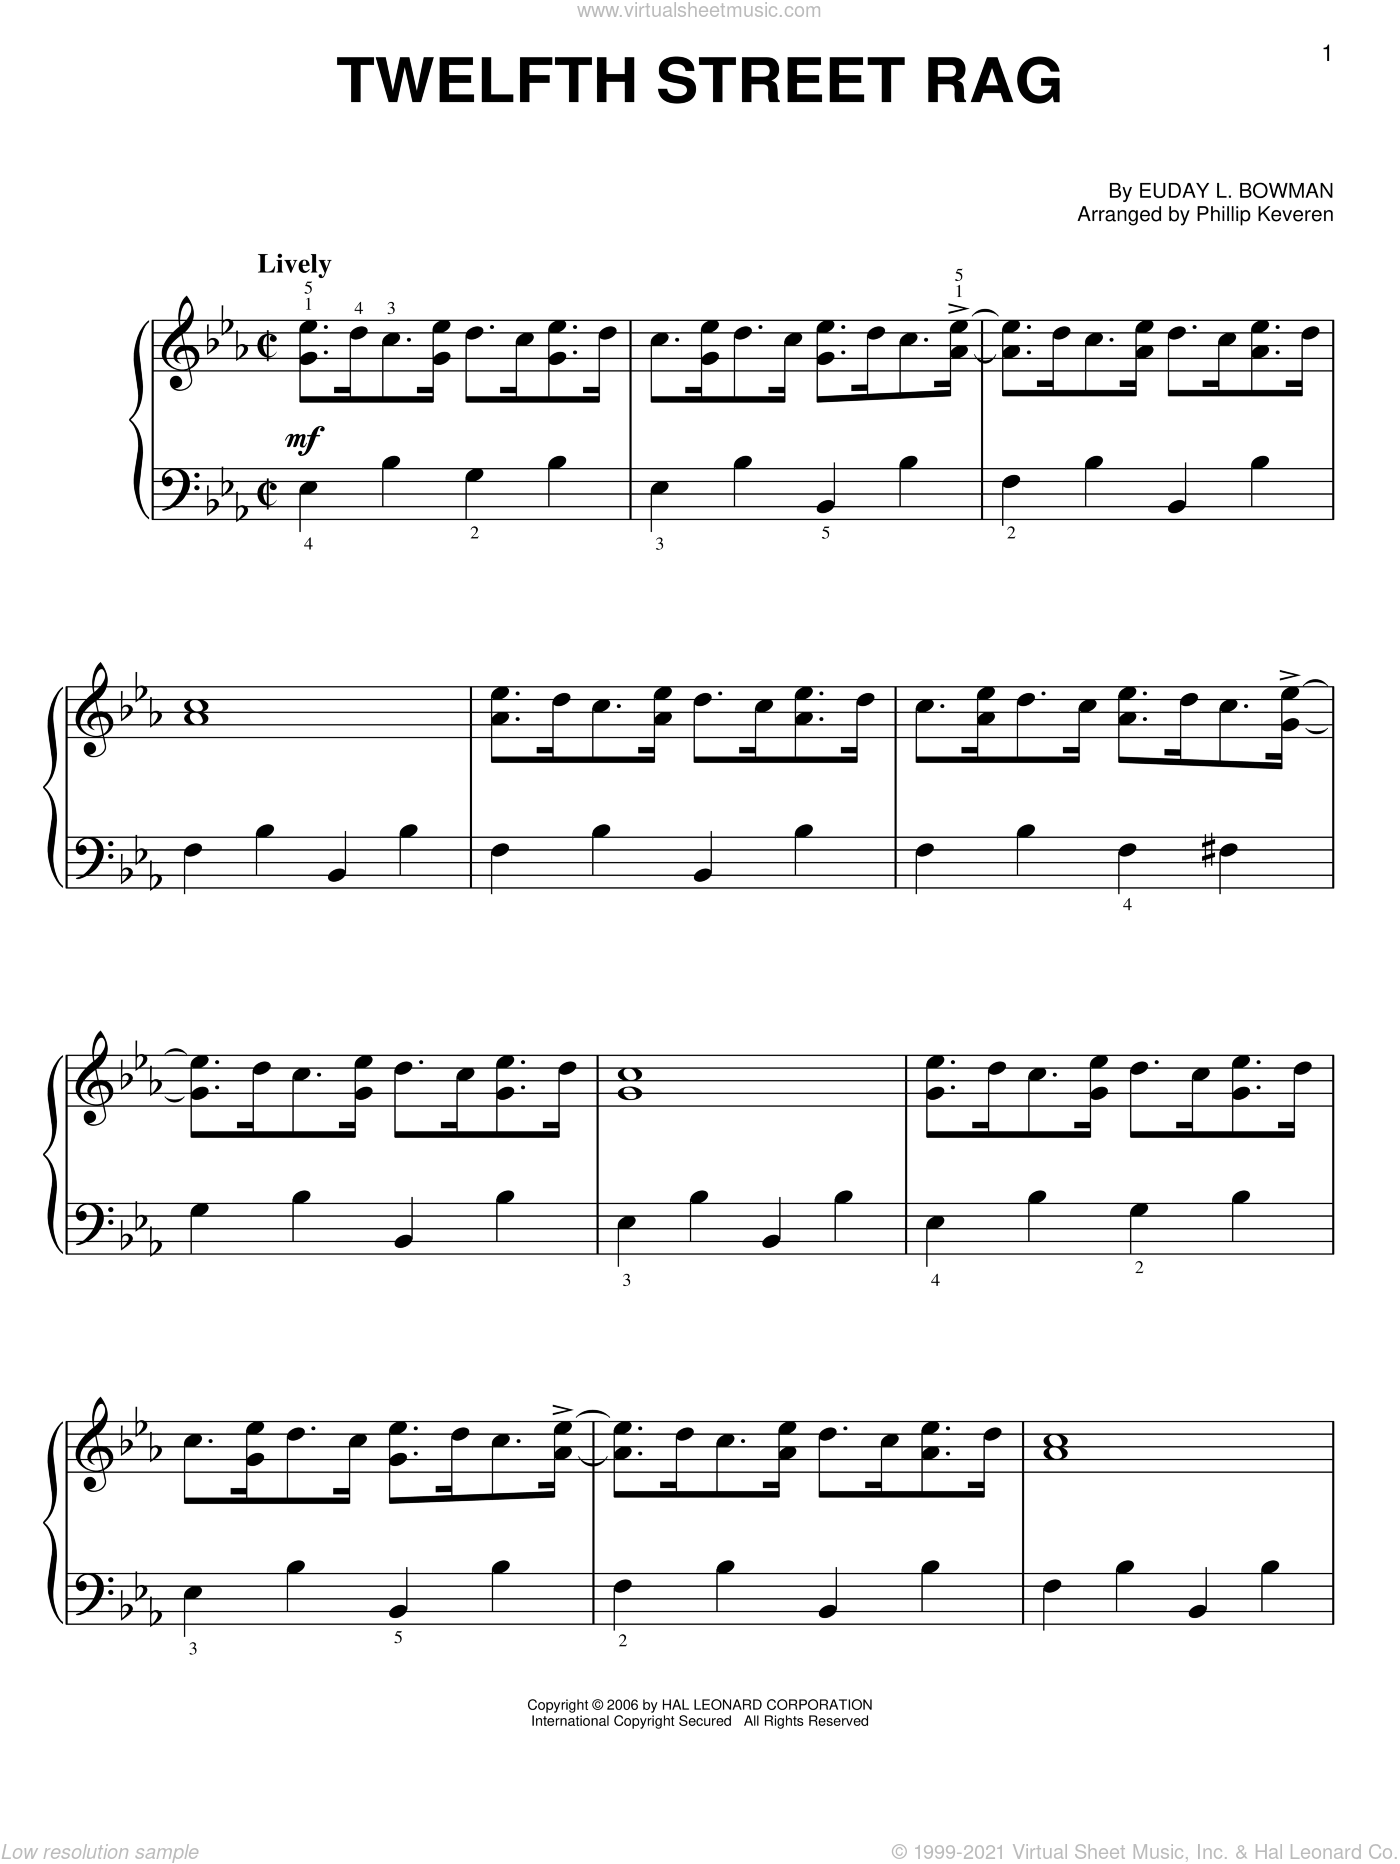 Twelfth Street Rag sheet music for piano solo by Euday L. Bowman and Phillip Keveren, easy skill level